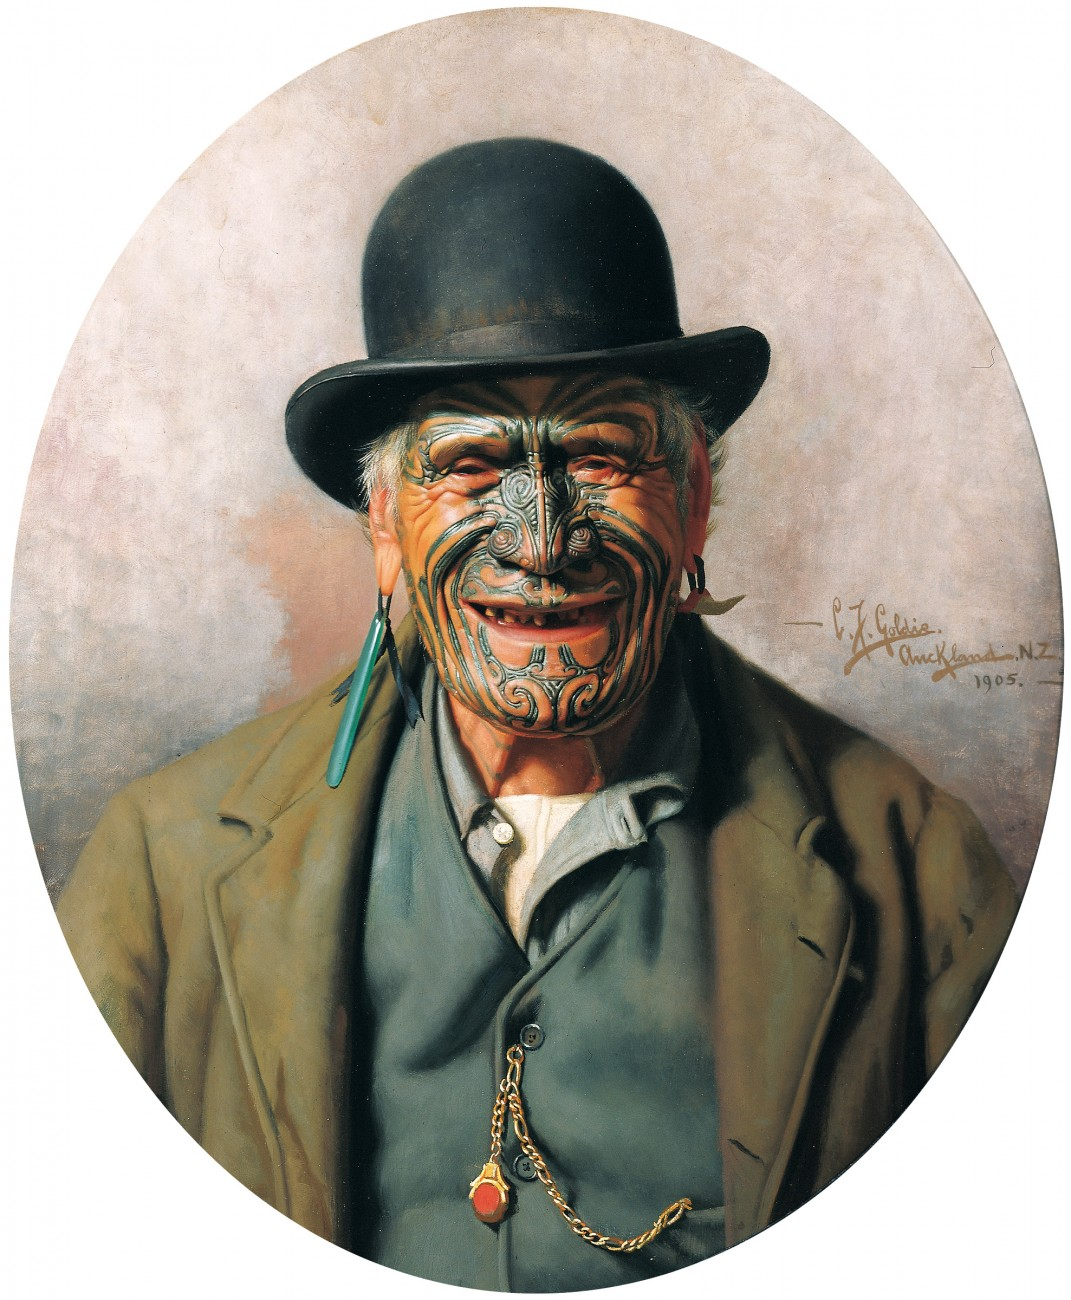 'All 'e Same t'e Pakeha' or A Good Joke (1905) is probably Goldie's best- known portrait. Te Aho-o-te-Rangi Wharepu, a warrior chief of Ngati Mahuta, was known for his sartorial elegance. But his cheesy grin and eclectic attire, and the imperfect English of the painting's title, offend the modern sense of political correctness. It is as if Te Aho has been set up as an object of ridicule: a rogue in a bowler hat. But who has the last laugh? Perhaps it is Te Aho, who is immortalised in this most iconic of images.